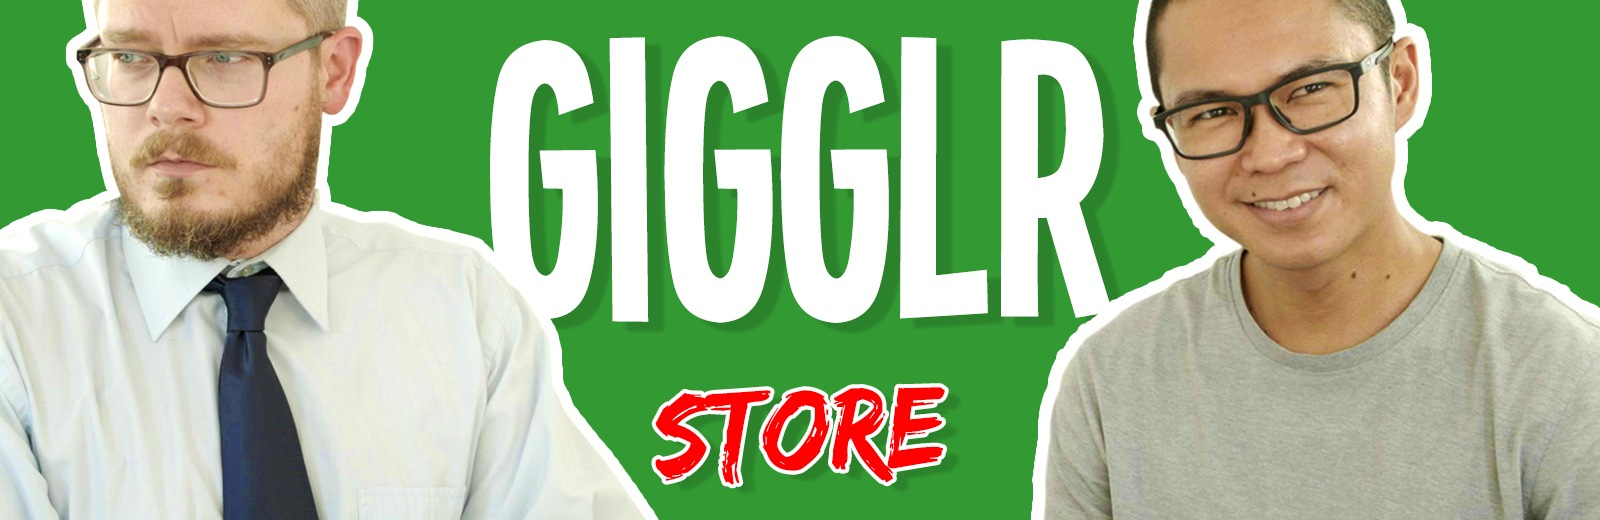 GIGGLR ▨ Store Store